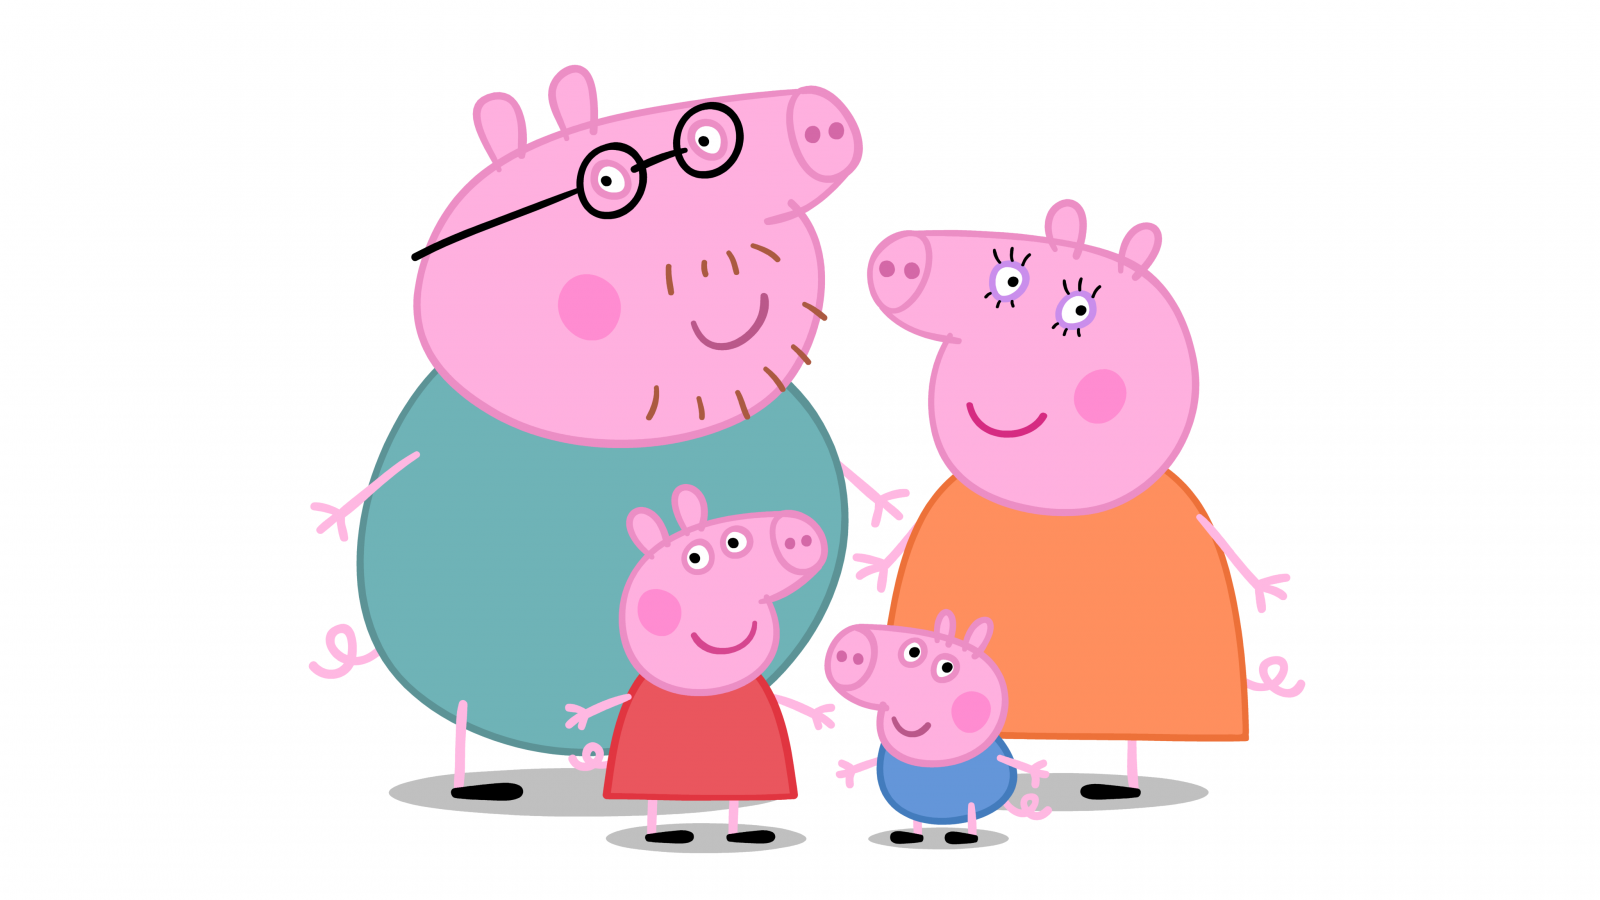 peppa pig png HD Wallpapers Download Free peppa pig png Tumblr - Pinterest  Hd Wallpapers